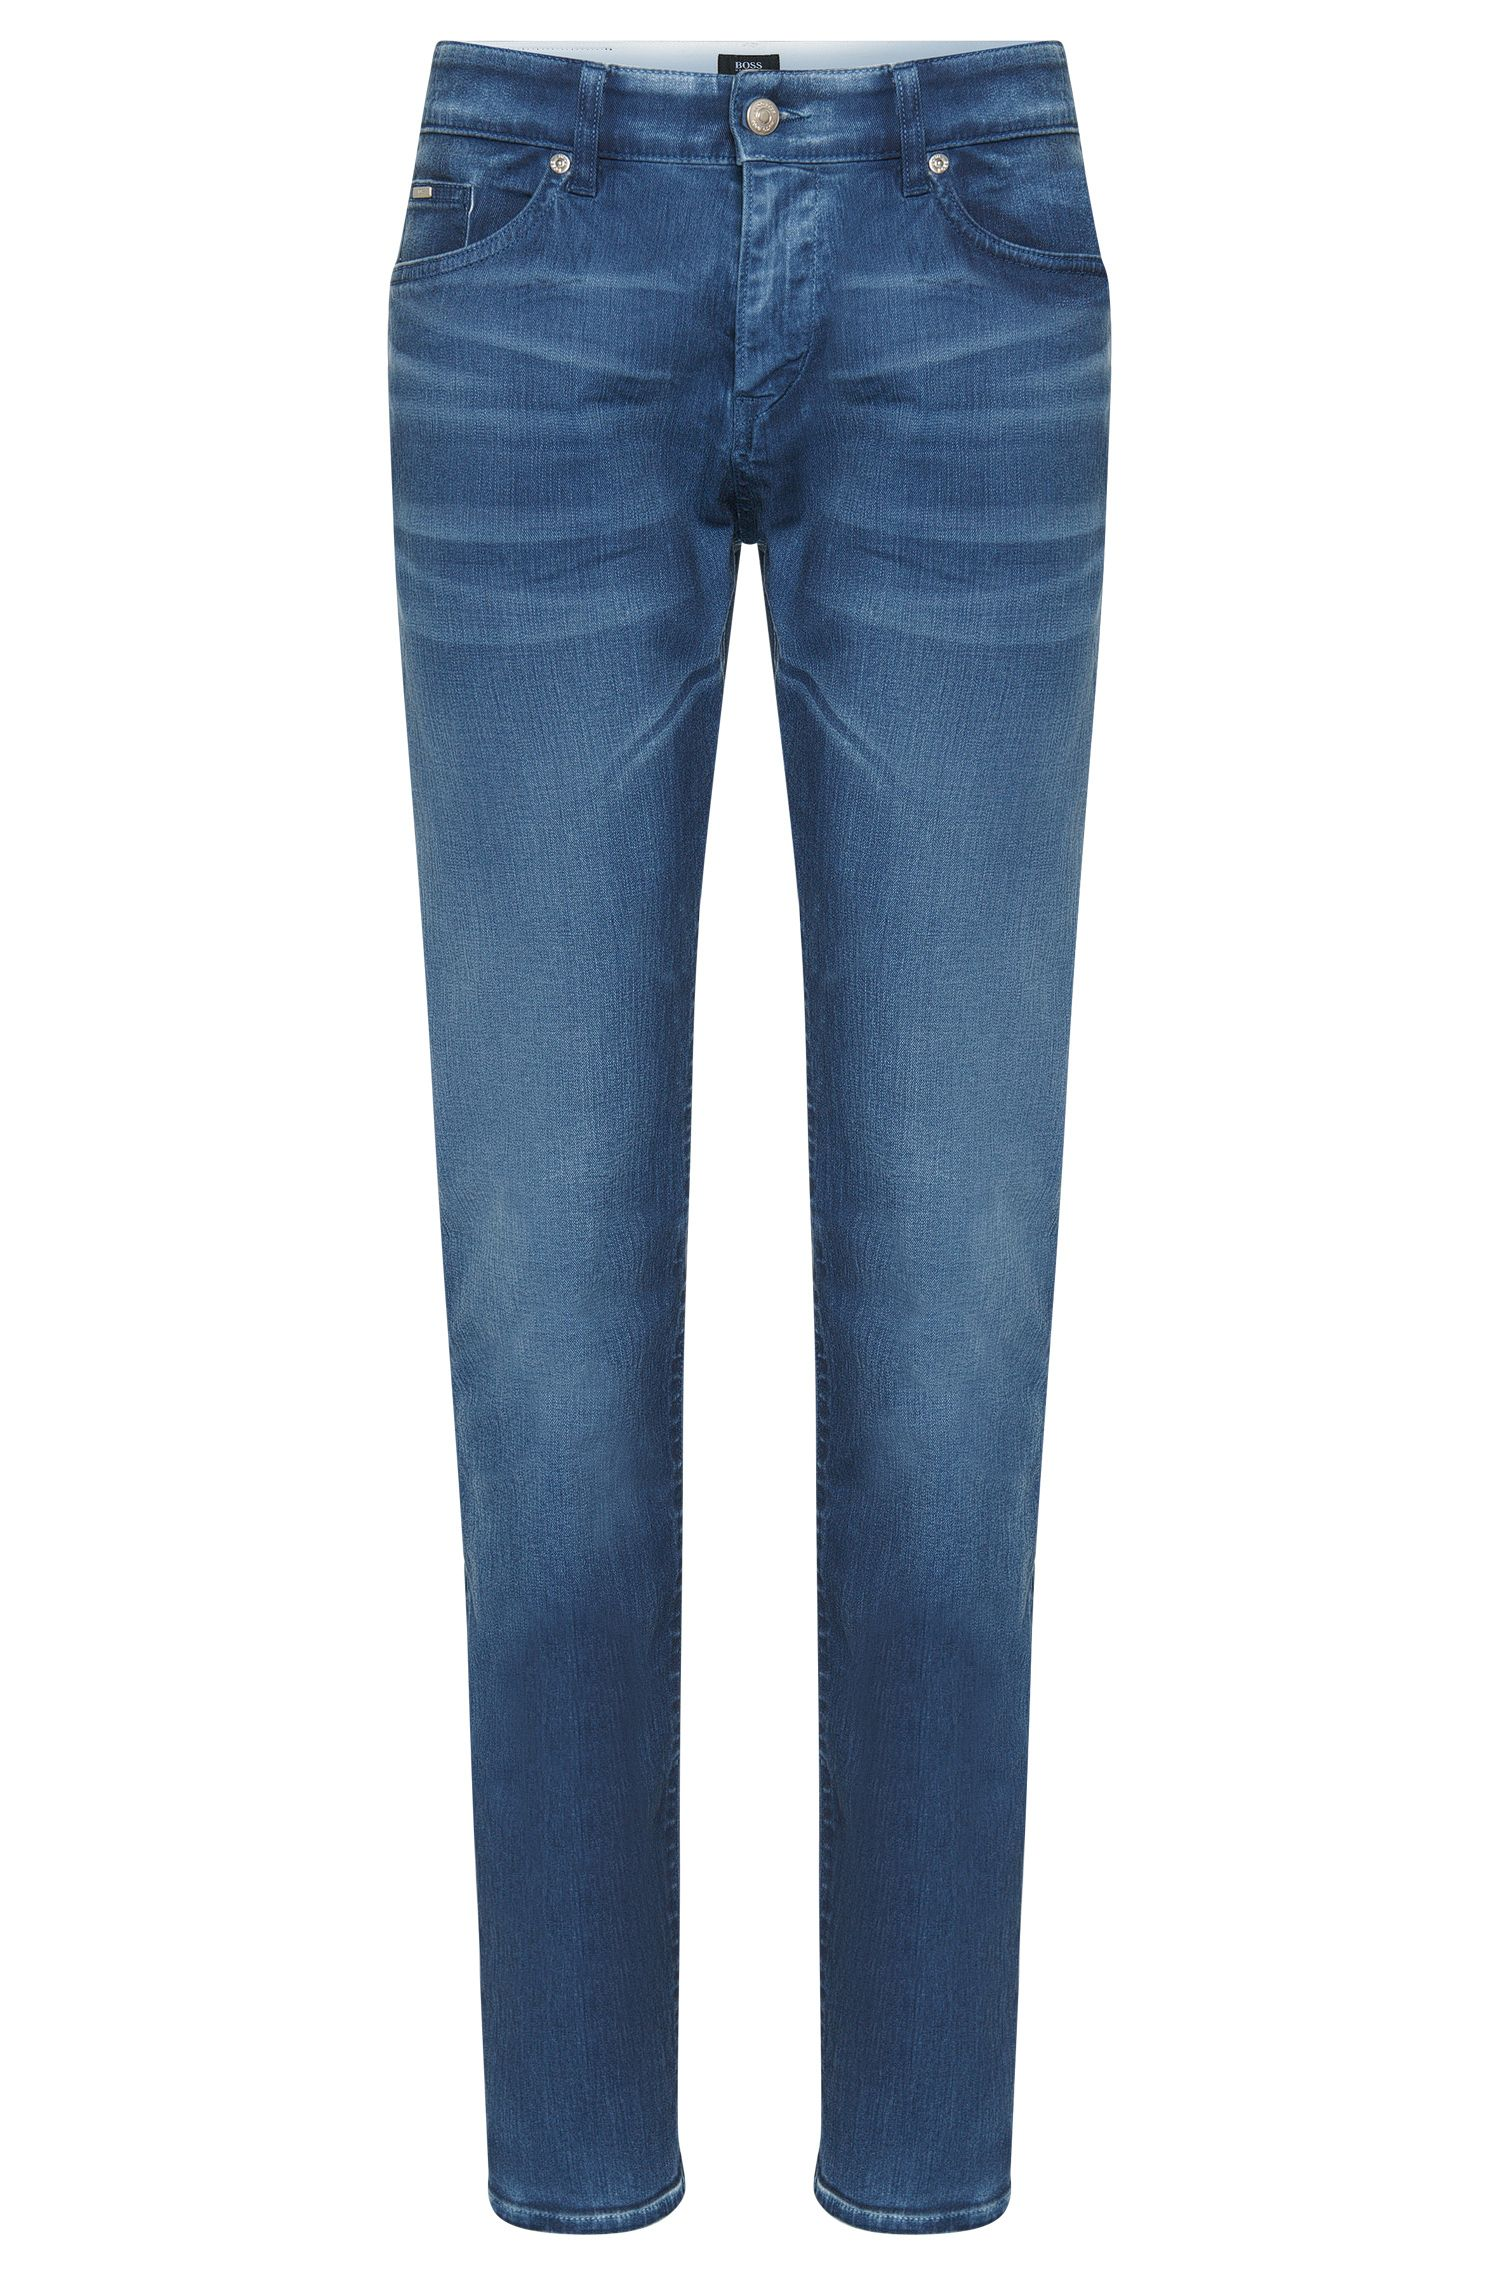 Slim-Fit Jeans aus Stretch-Baumwolle: 'Delaware3-1'